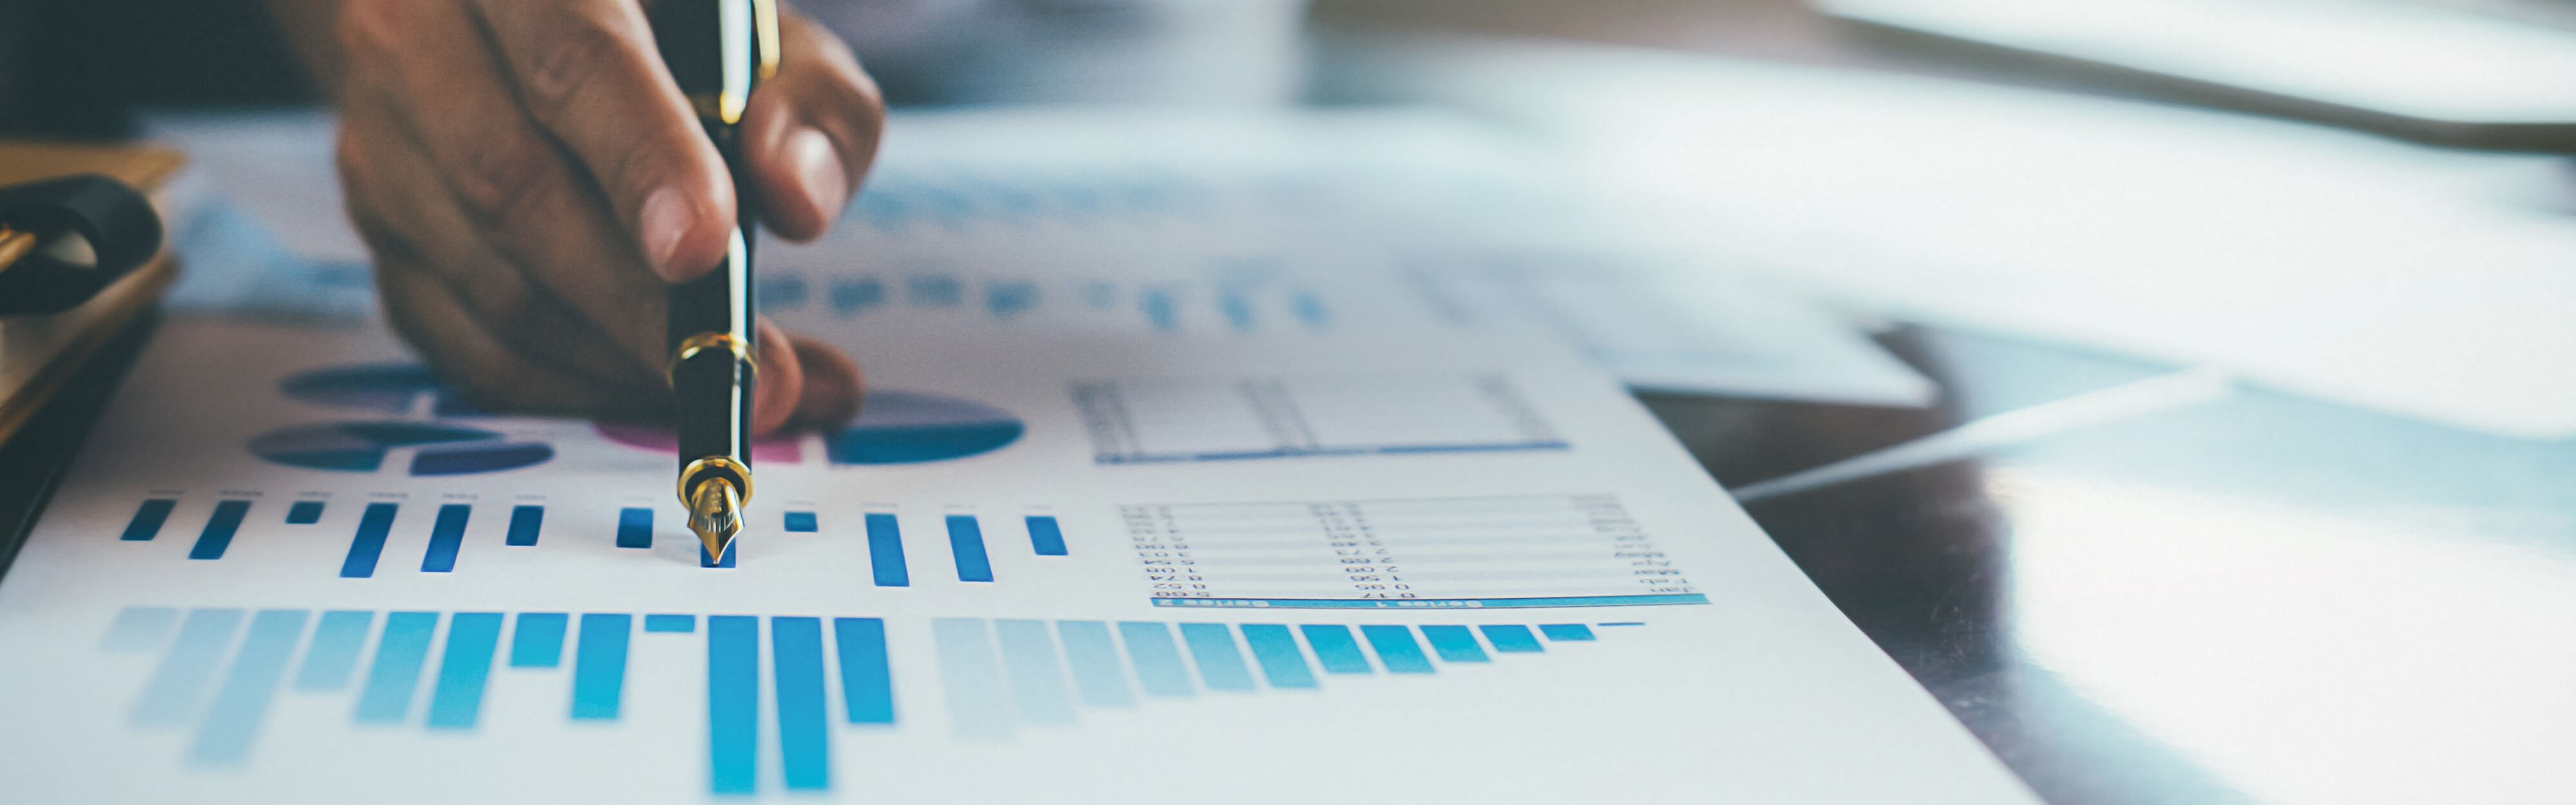 Benchmarking Solution for a Leading North American Tax and Audit Firm